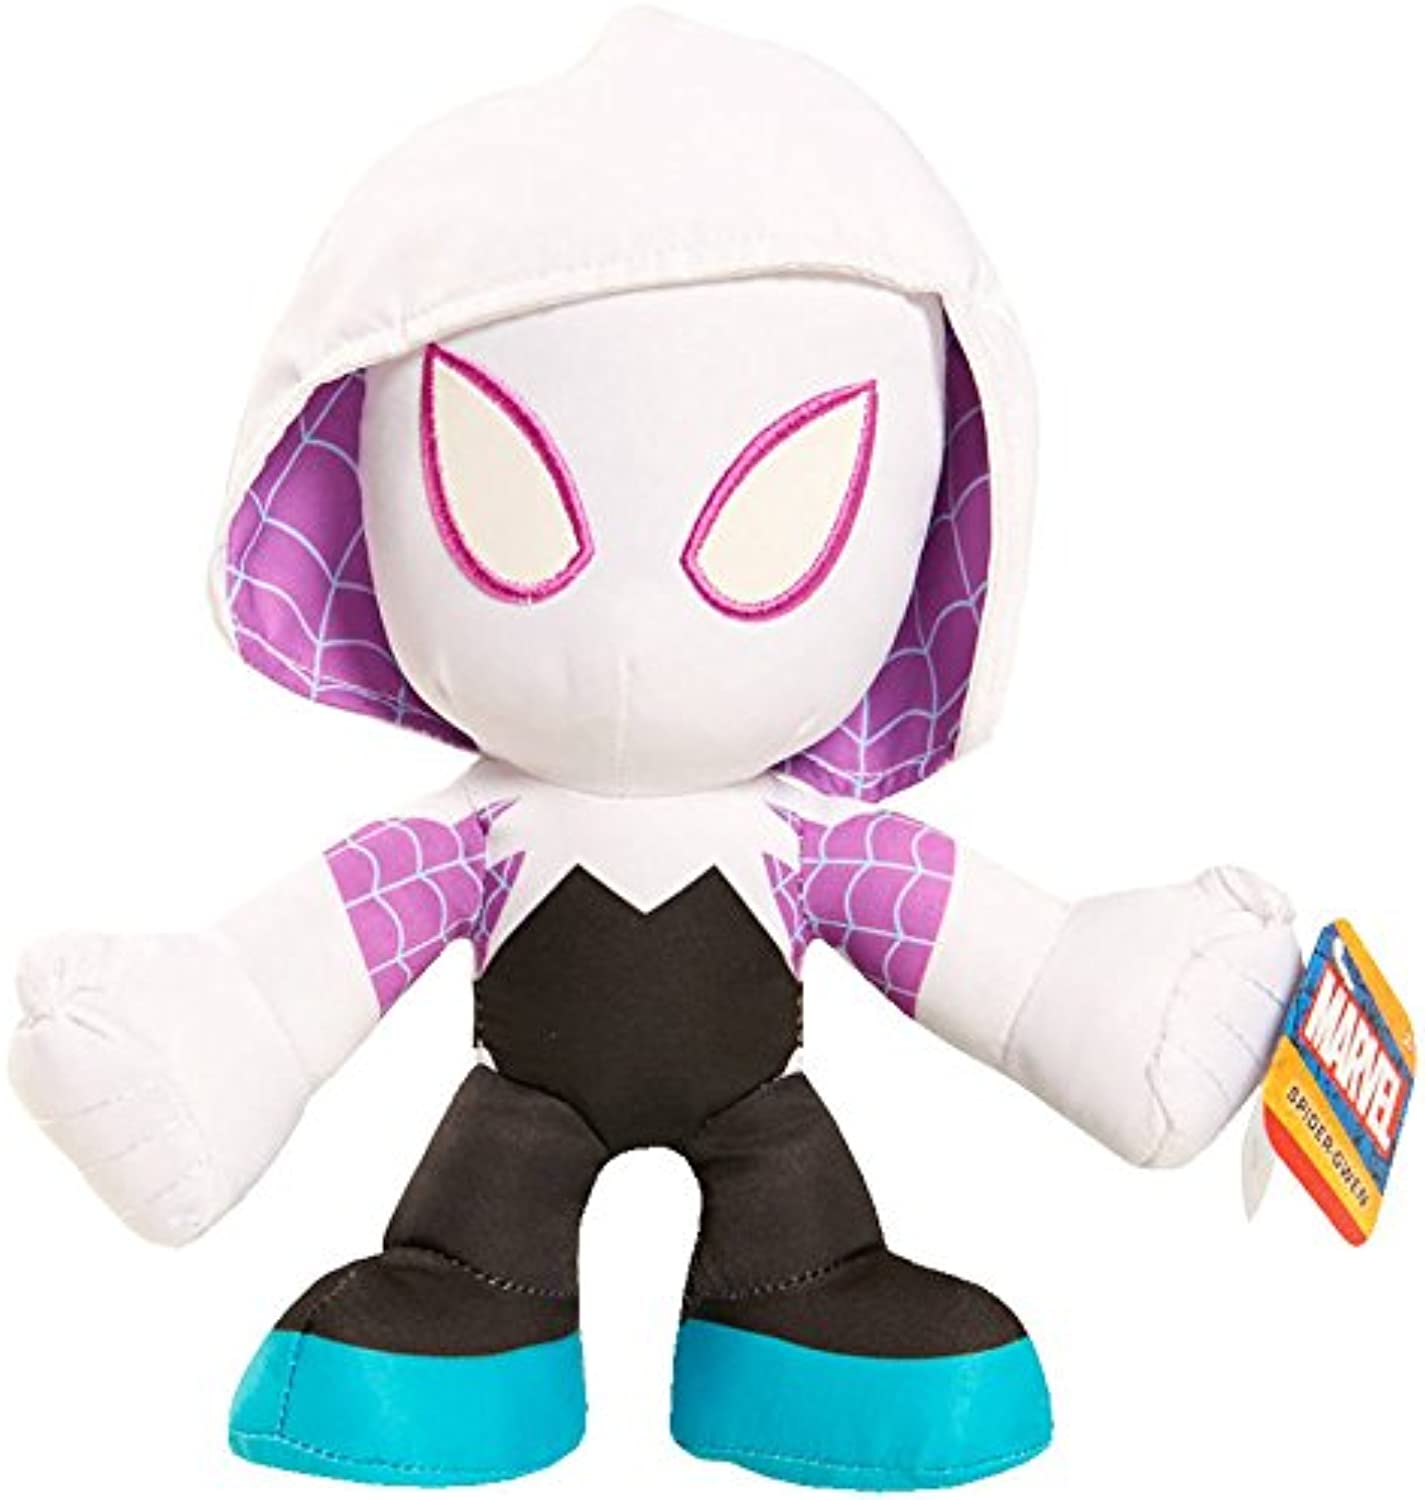 Marvel  Small Plush SPIDERGWEN  Perfect for Kids and Collectors Alike